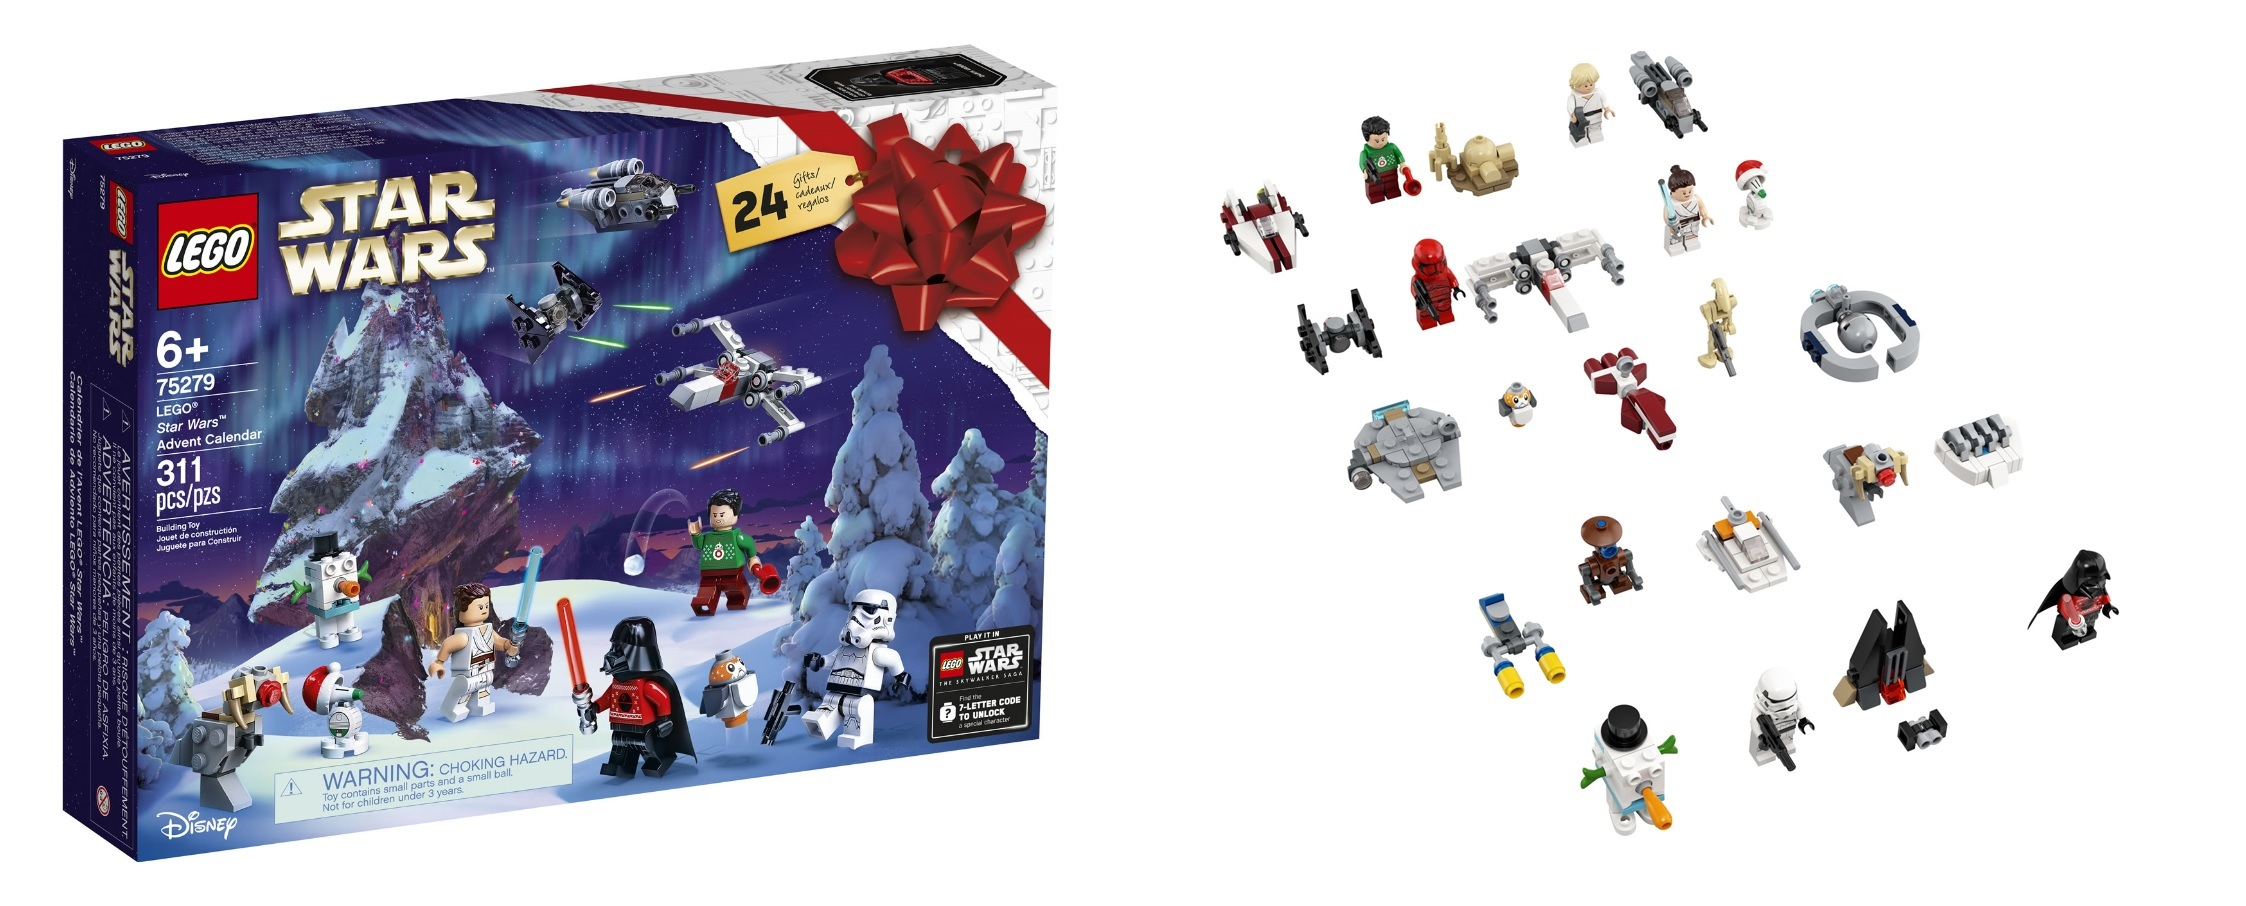 New Star Wars Lego Sets Christmas 2020 2020 August Summer LEGO Star Wars Sets (75279 75280 75281 75283